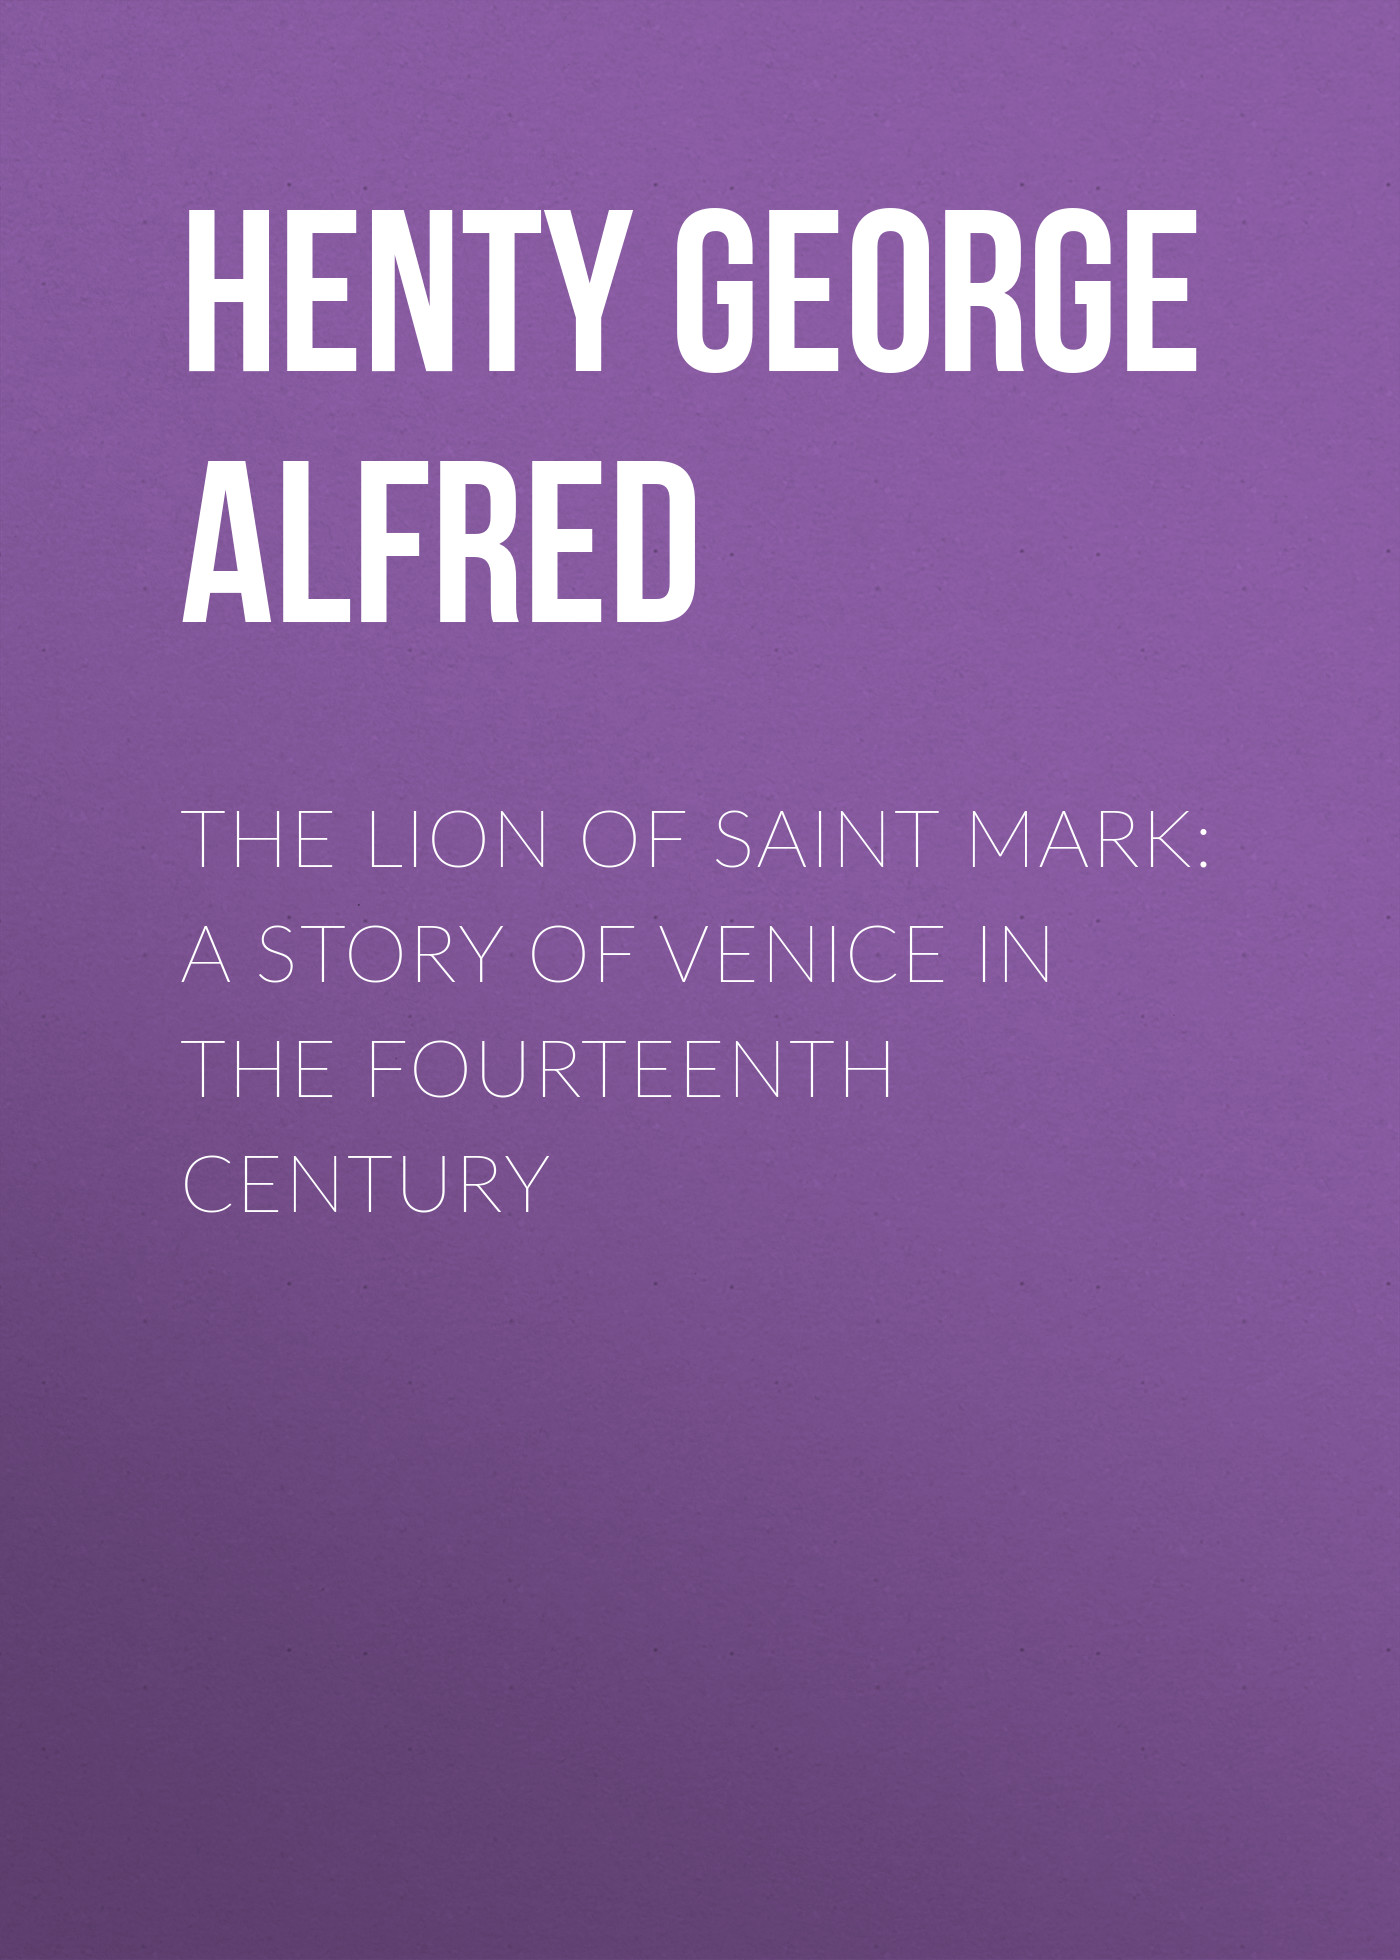 Henty George Alfred The Lion of Saint Mark: A Story of Venice in the Fourteenth Century henty george alfred in the reign of terror the adventures of a westminster boy